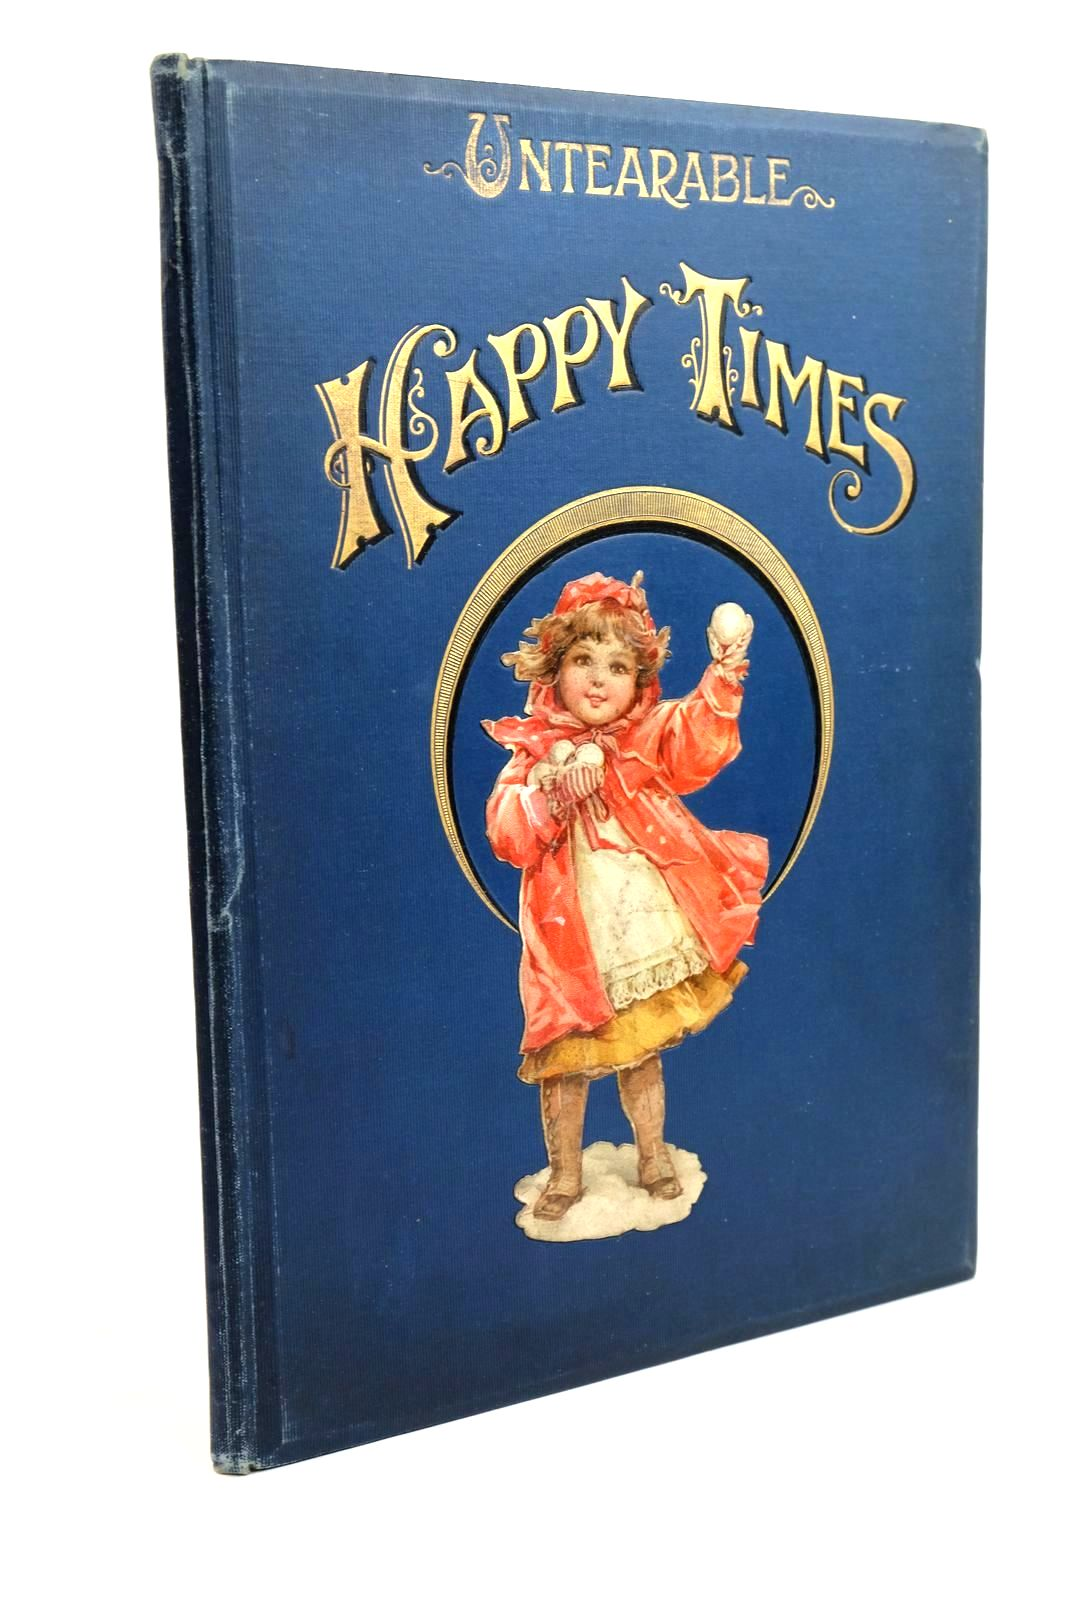 Photo of HAPPY TIMES illustrated by Westrup, N. et al., published by Dean & Son Ltd. (STOCK CODE: 1321468)  for sale by Stella & Rose's Books